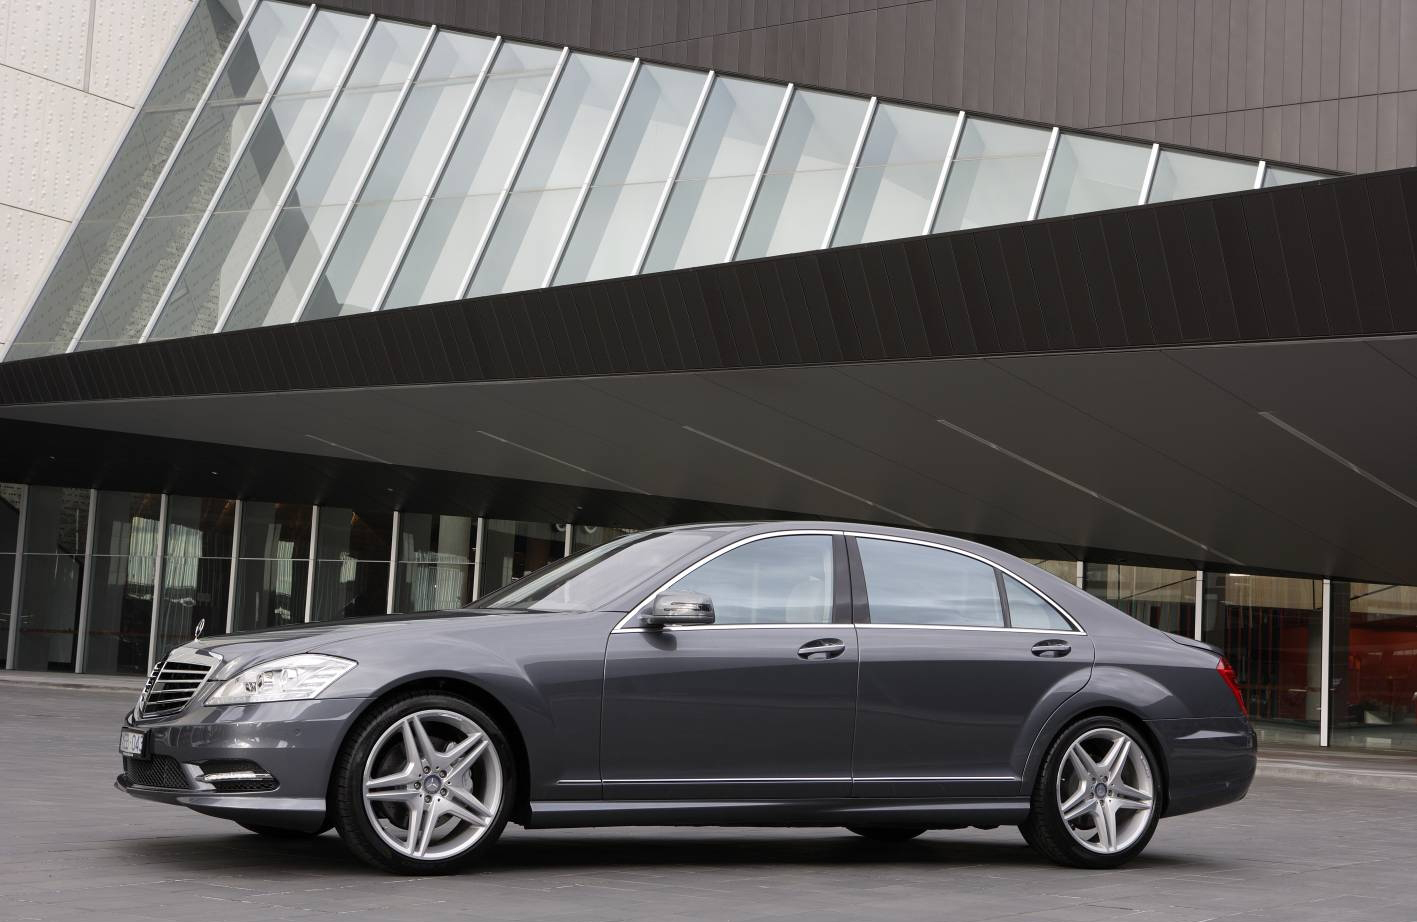 Mercedes benz s350 cdi will be put on sale in us for Mercedes benz s350